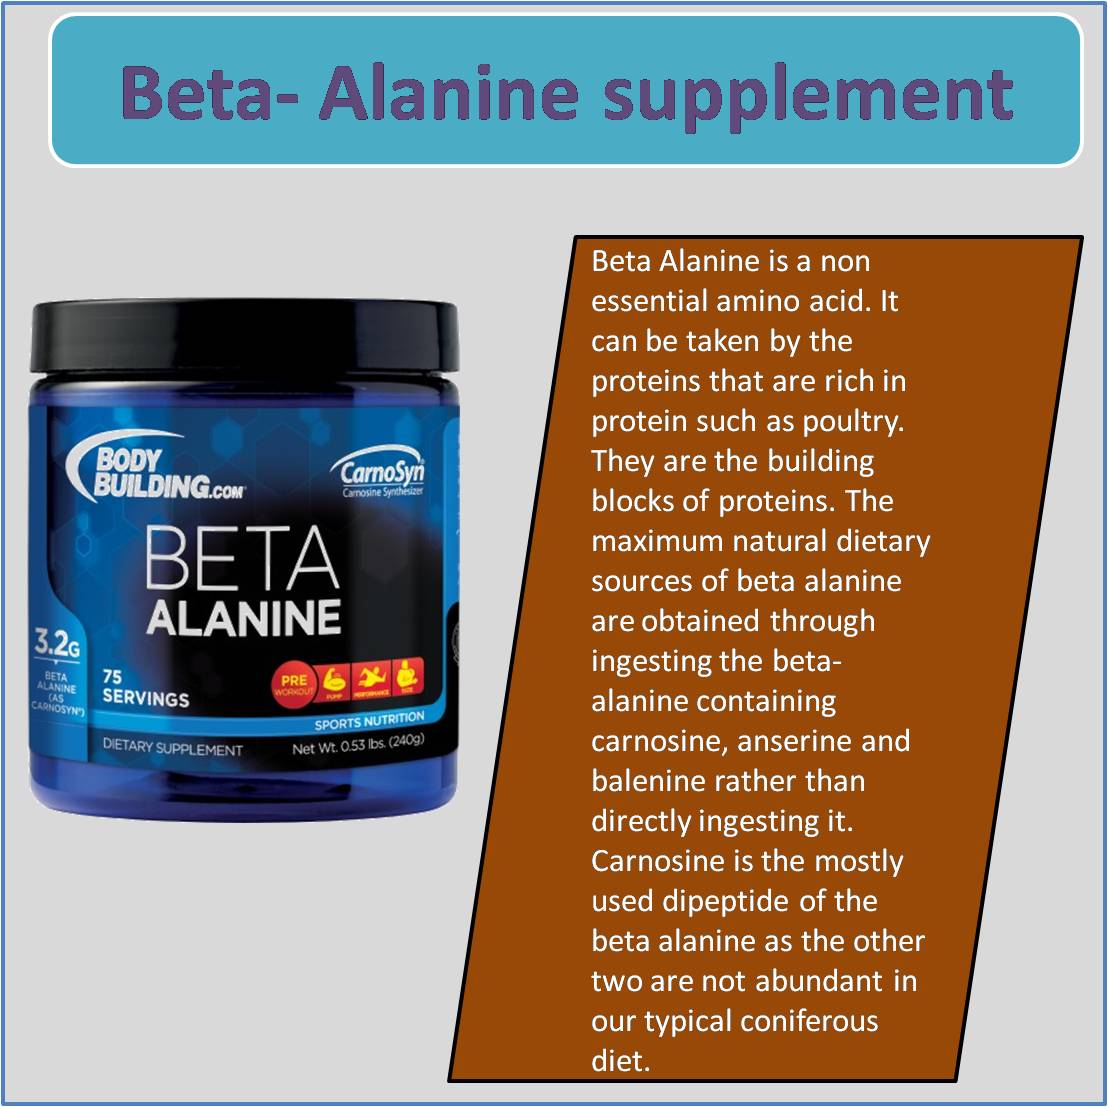 Beta- Alanine supplement